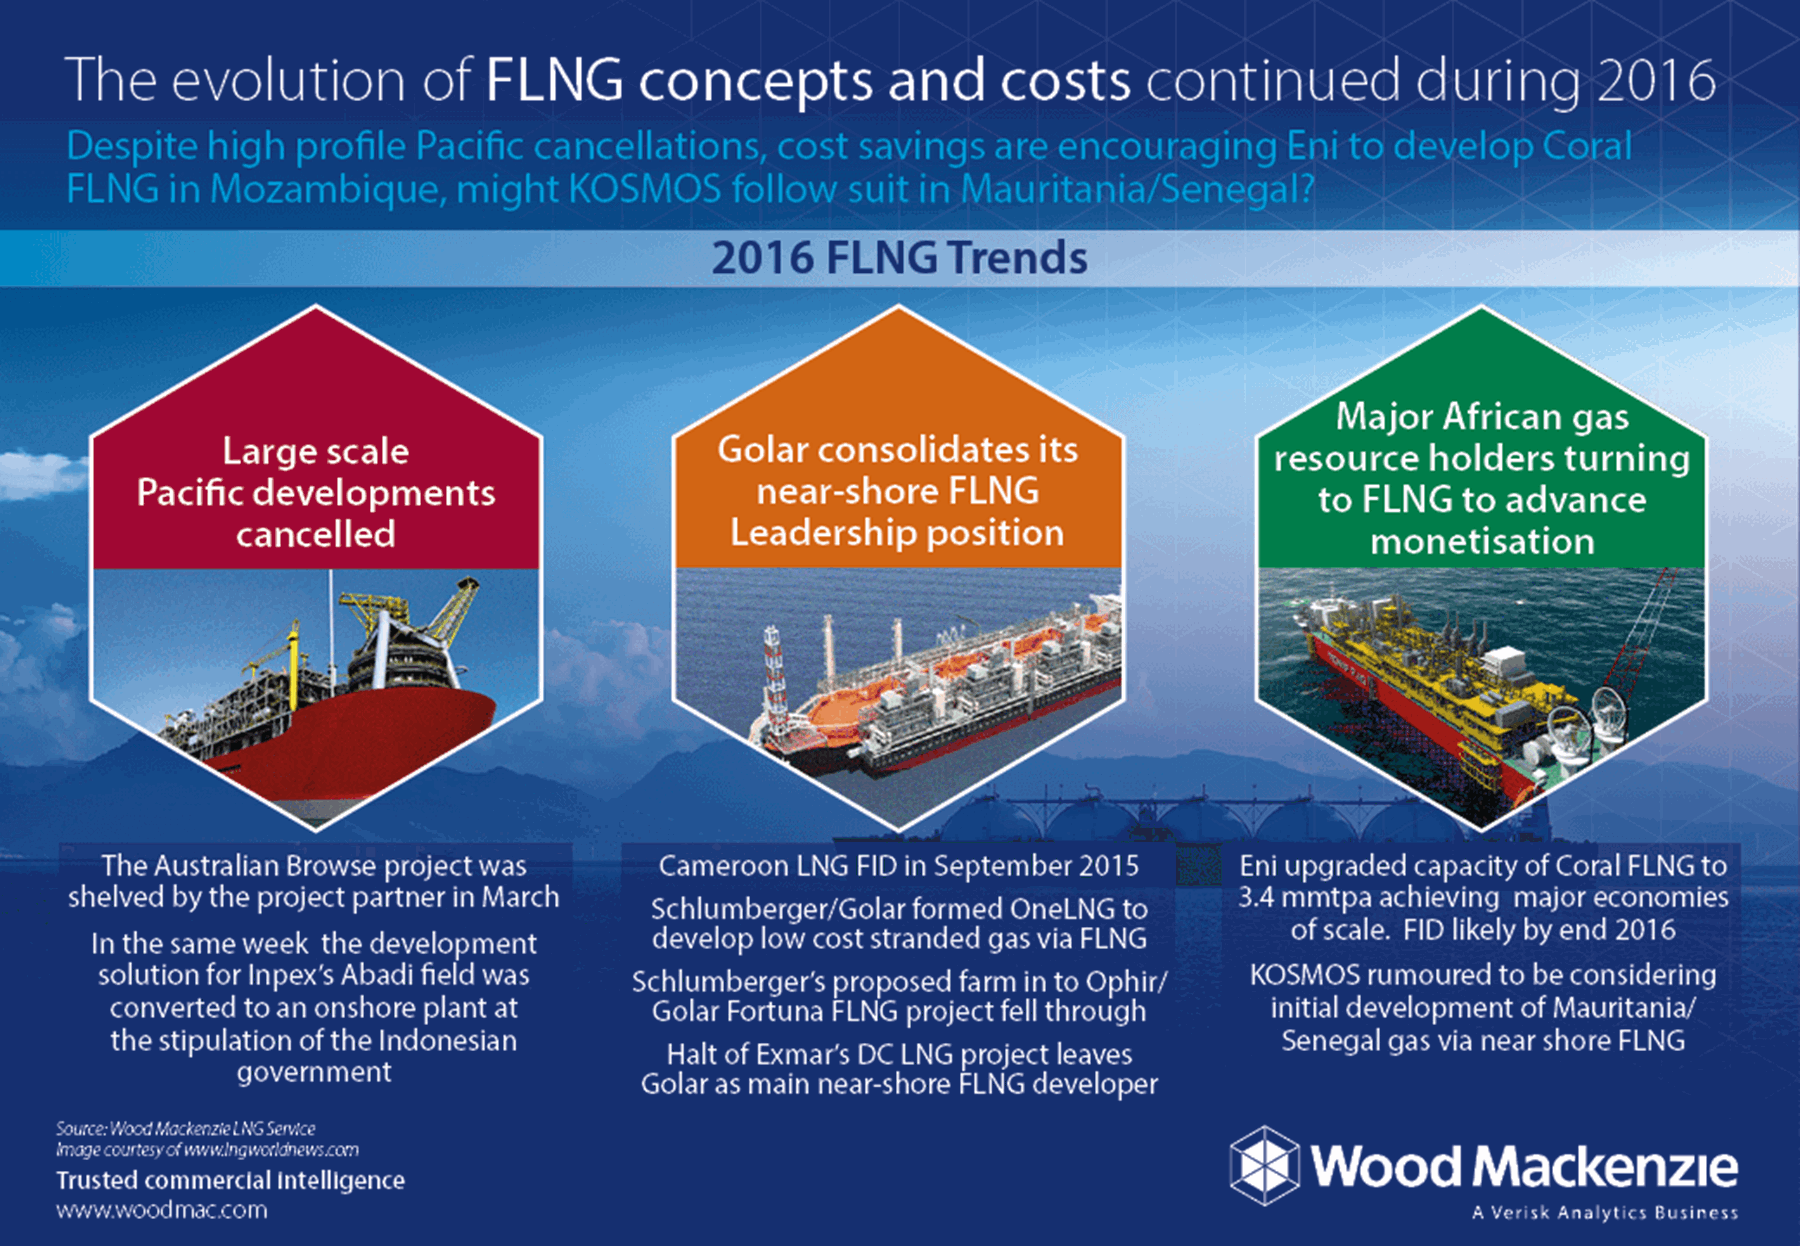 The evolution of FLNG concepts and costs | Wood Mackenzie